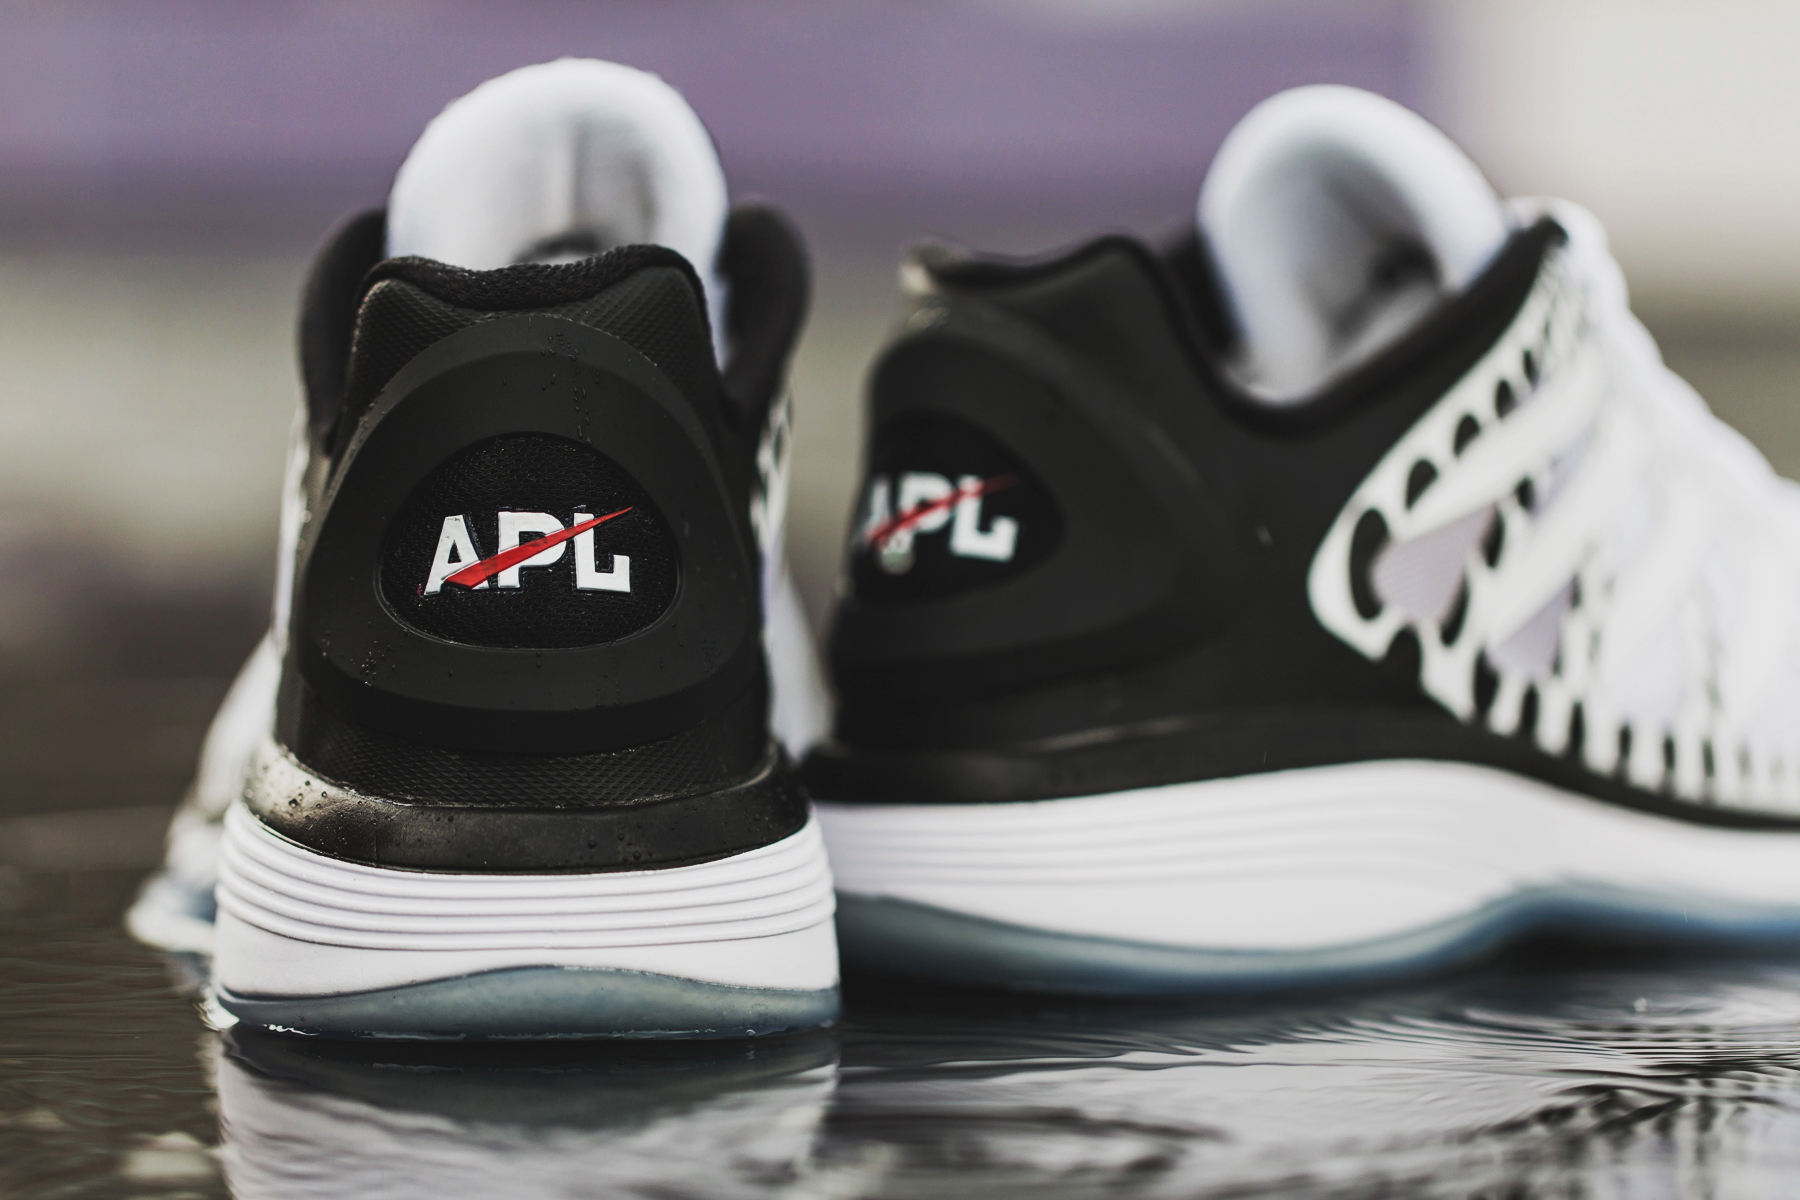 A Closer Look at the APL Vision Low